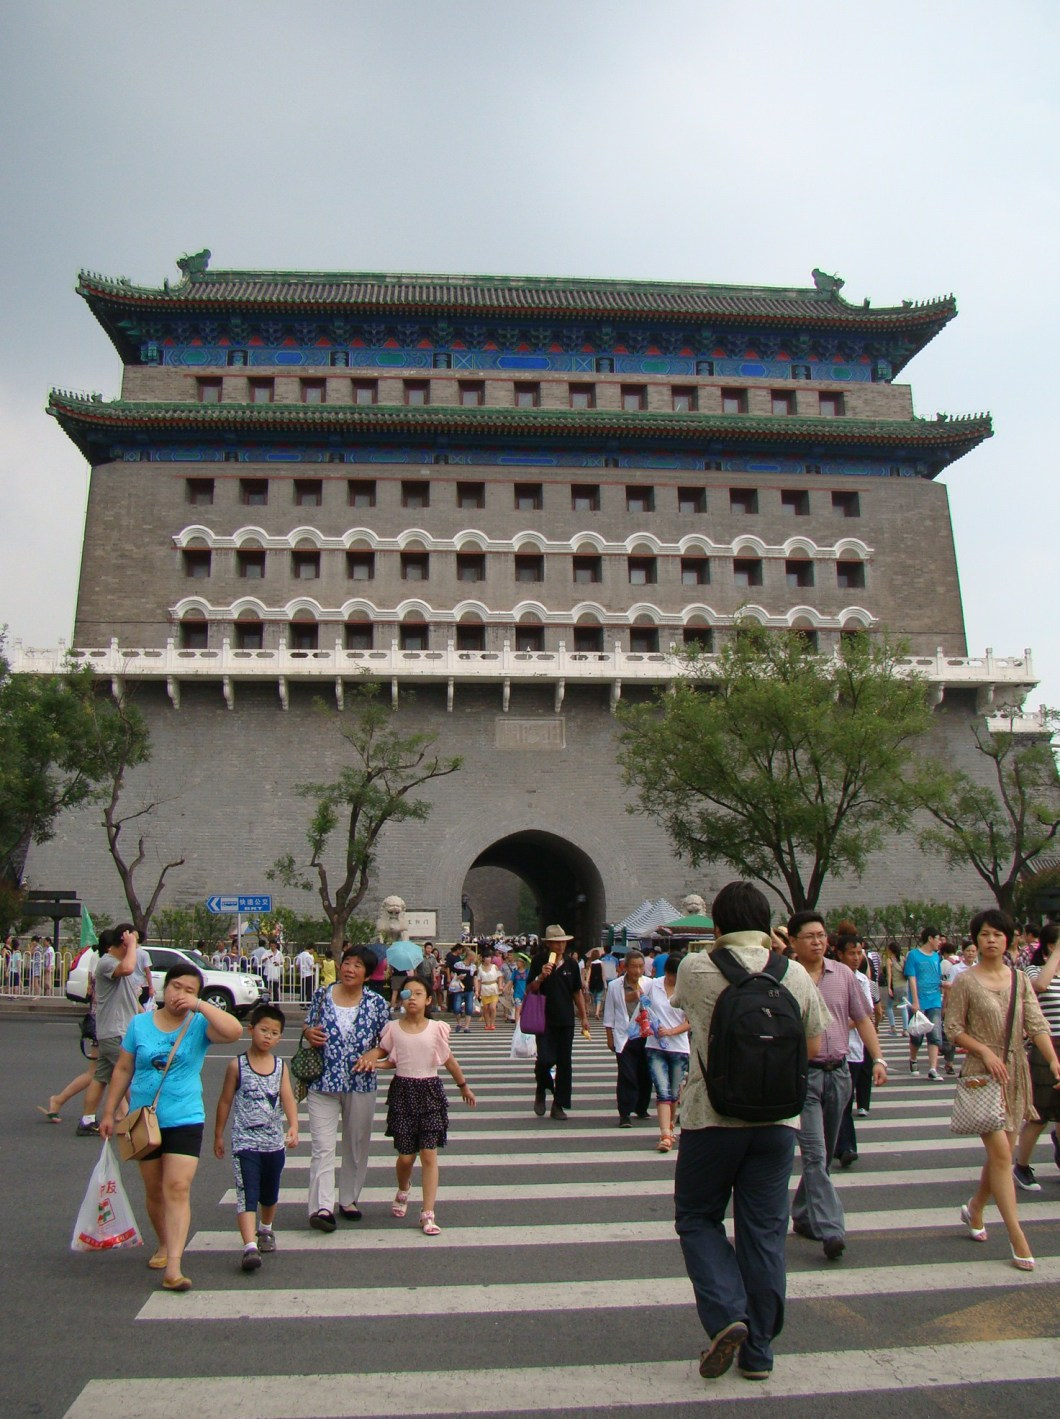 We entered Tiananmen Square through the south gate known as Qianmen